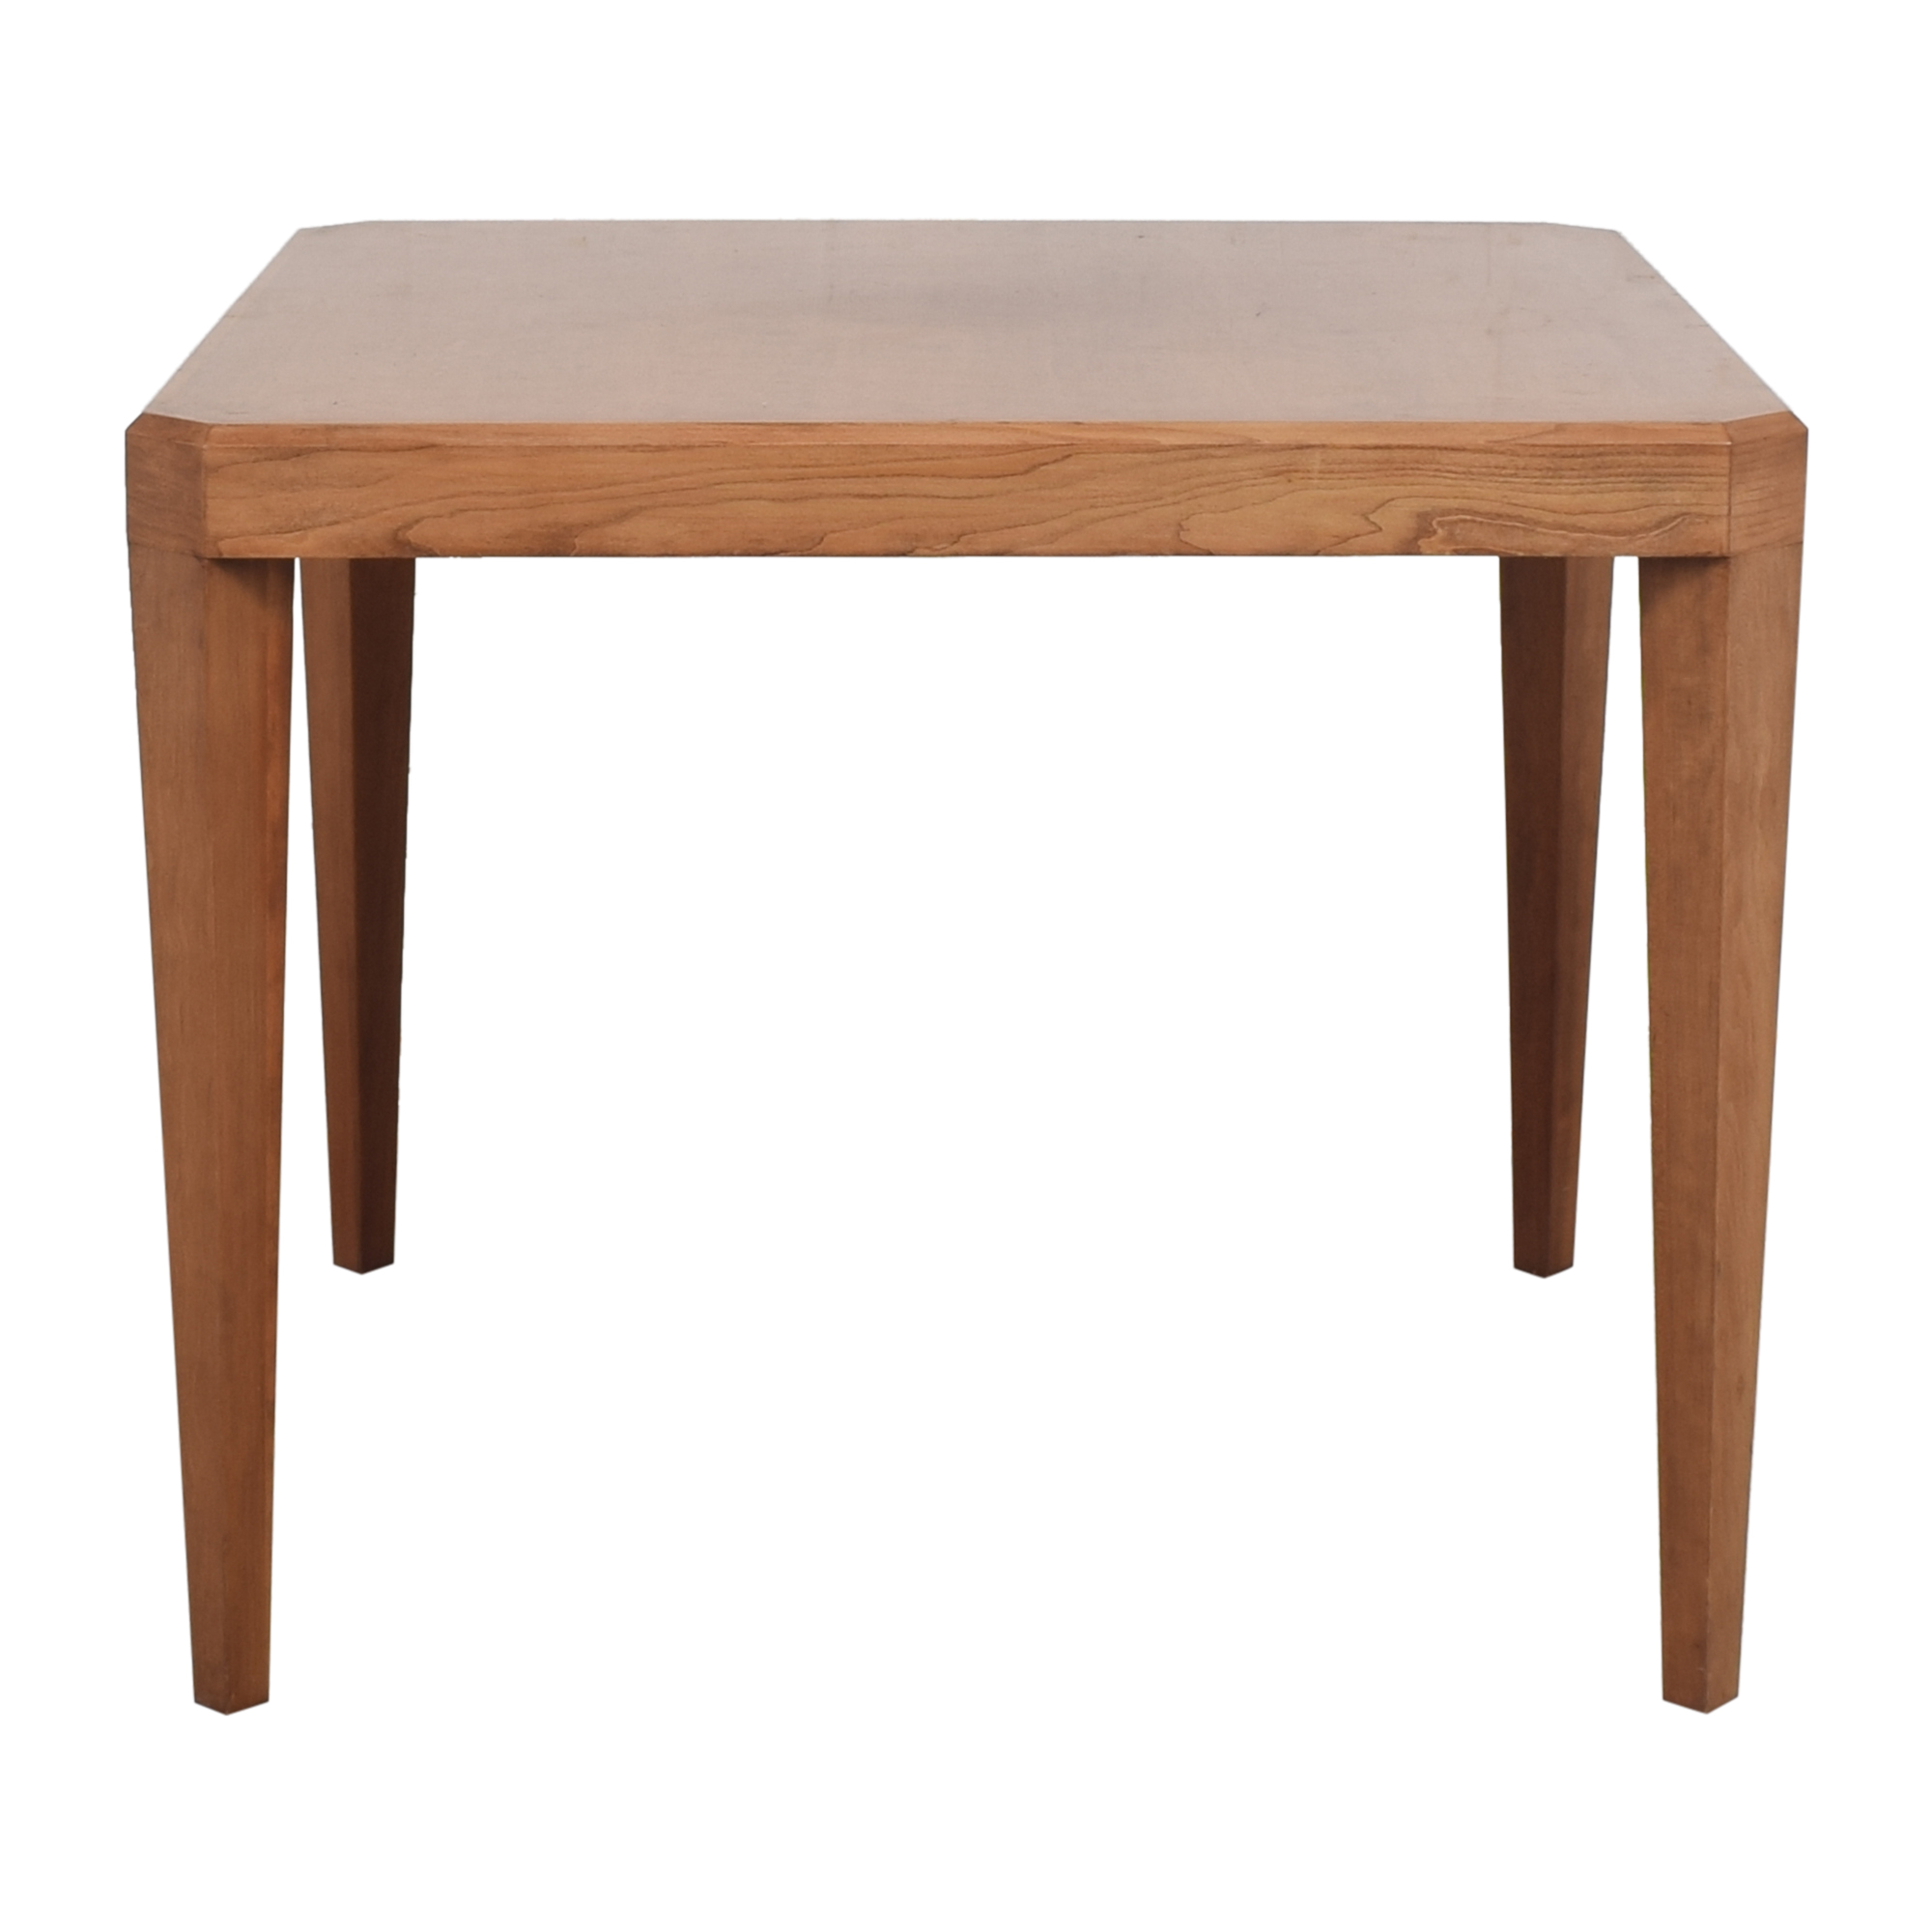 Square Dining Table / Dinner Tables